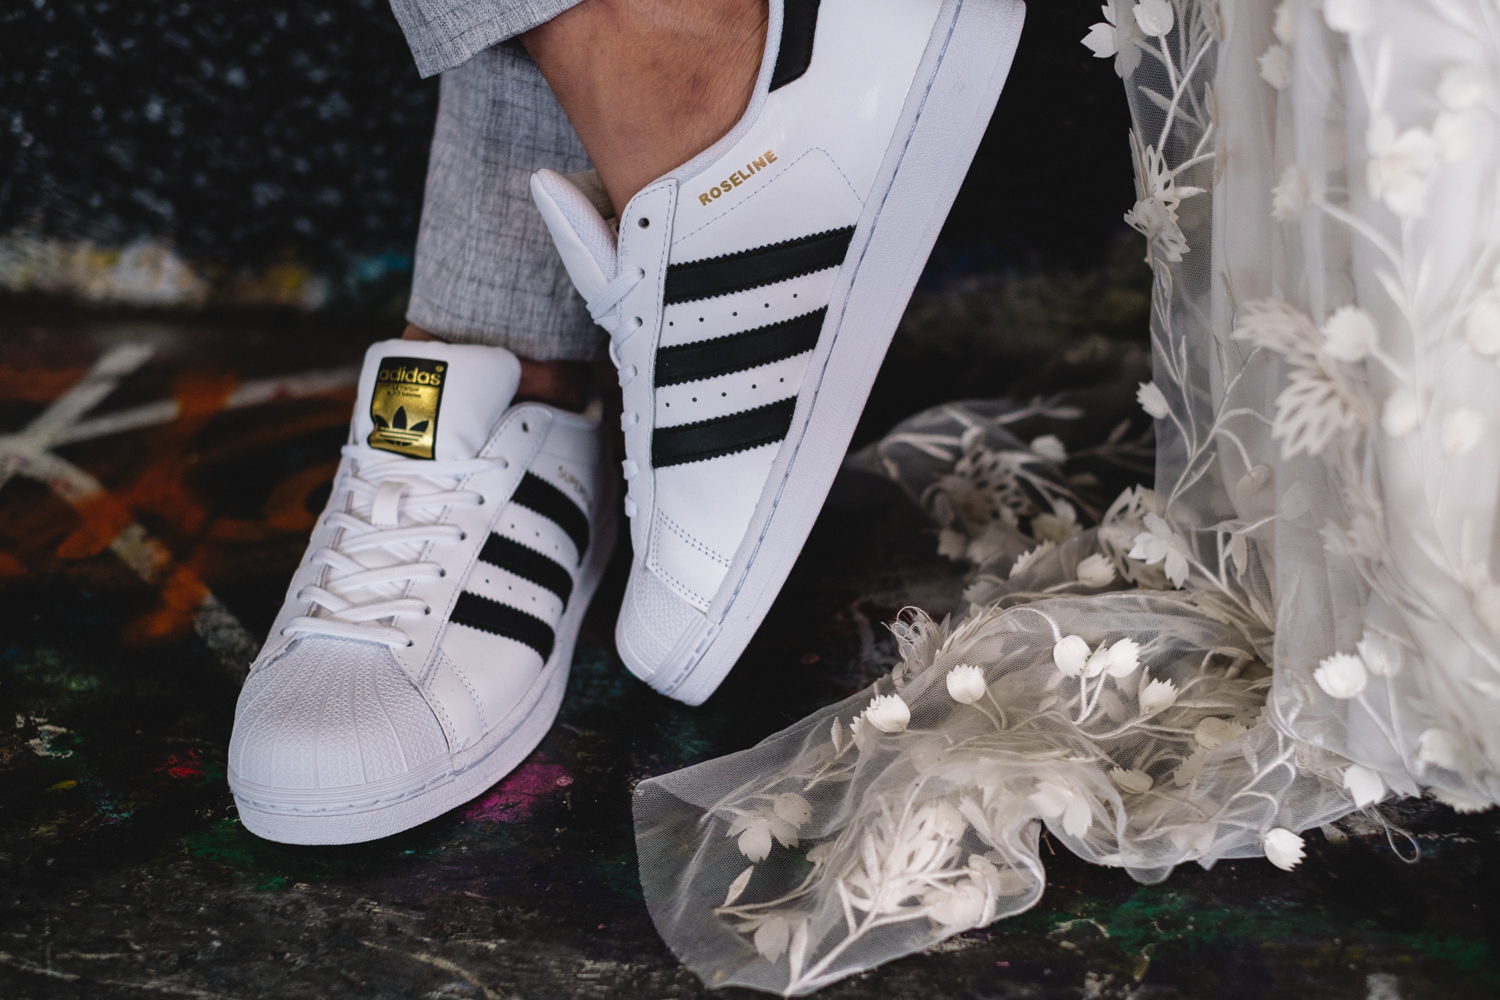 Copy of London pre-wedding photos - custom adidas trainers